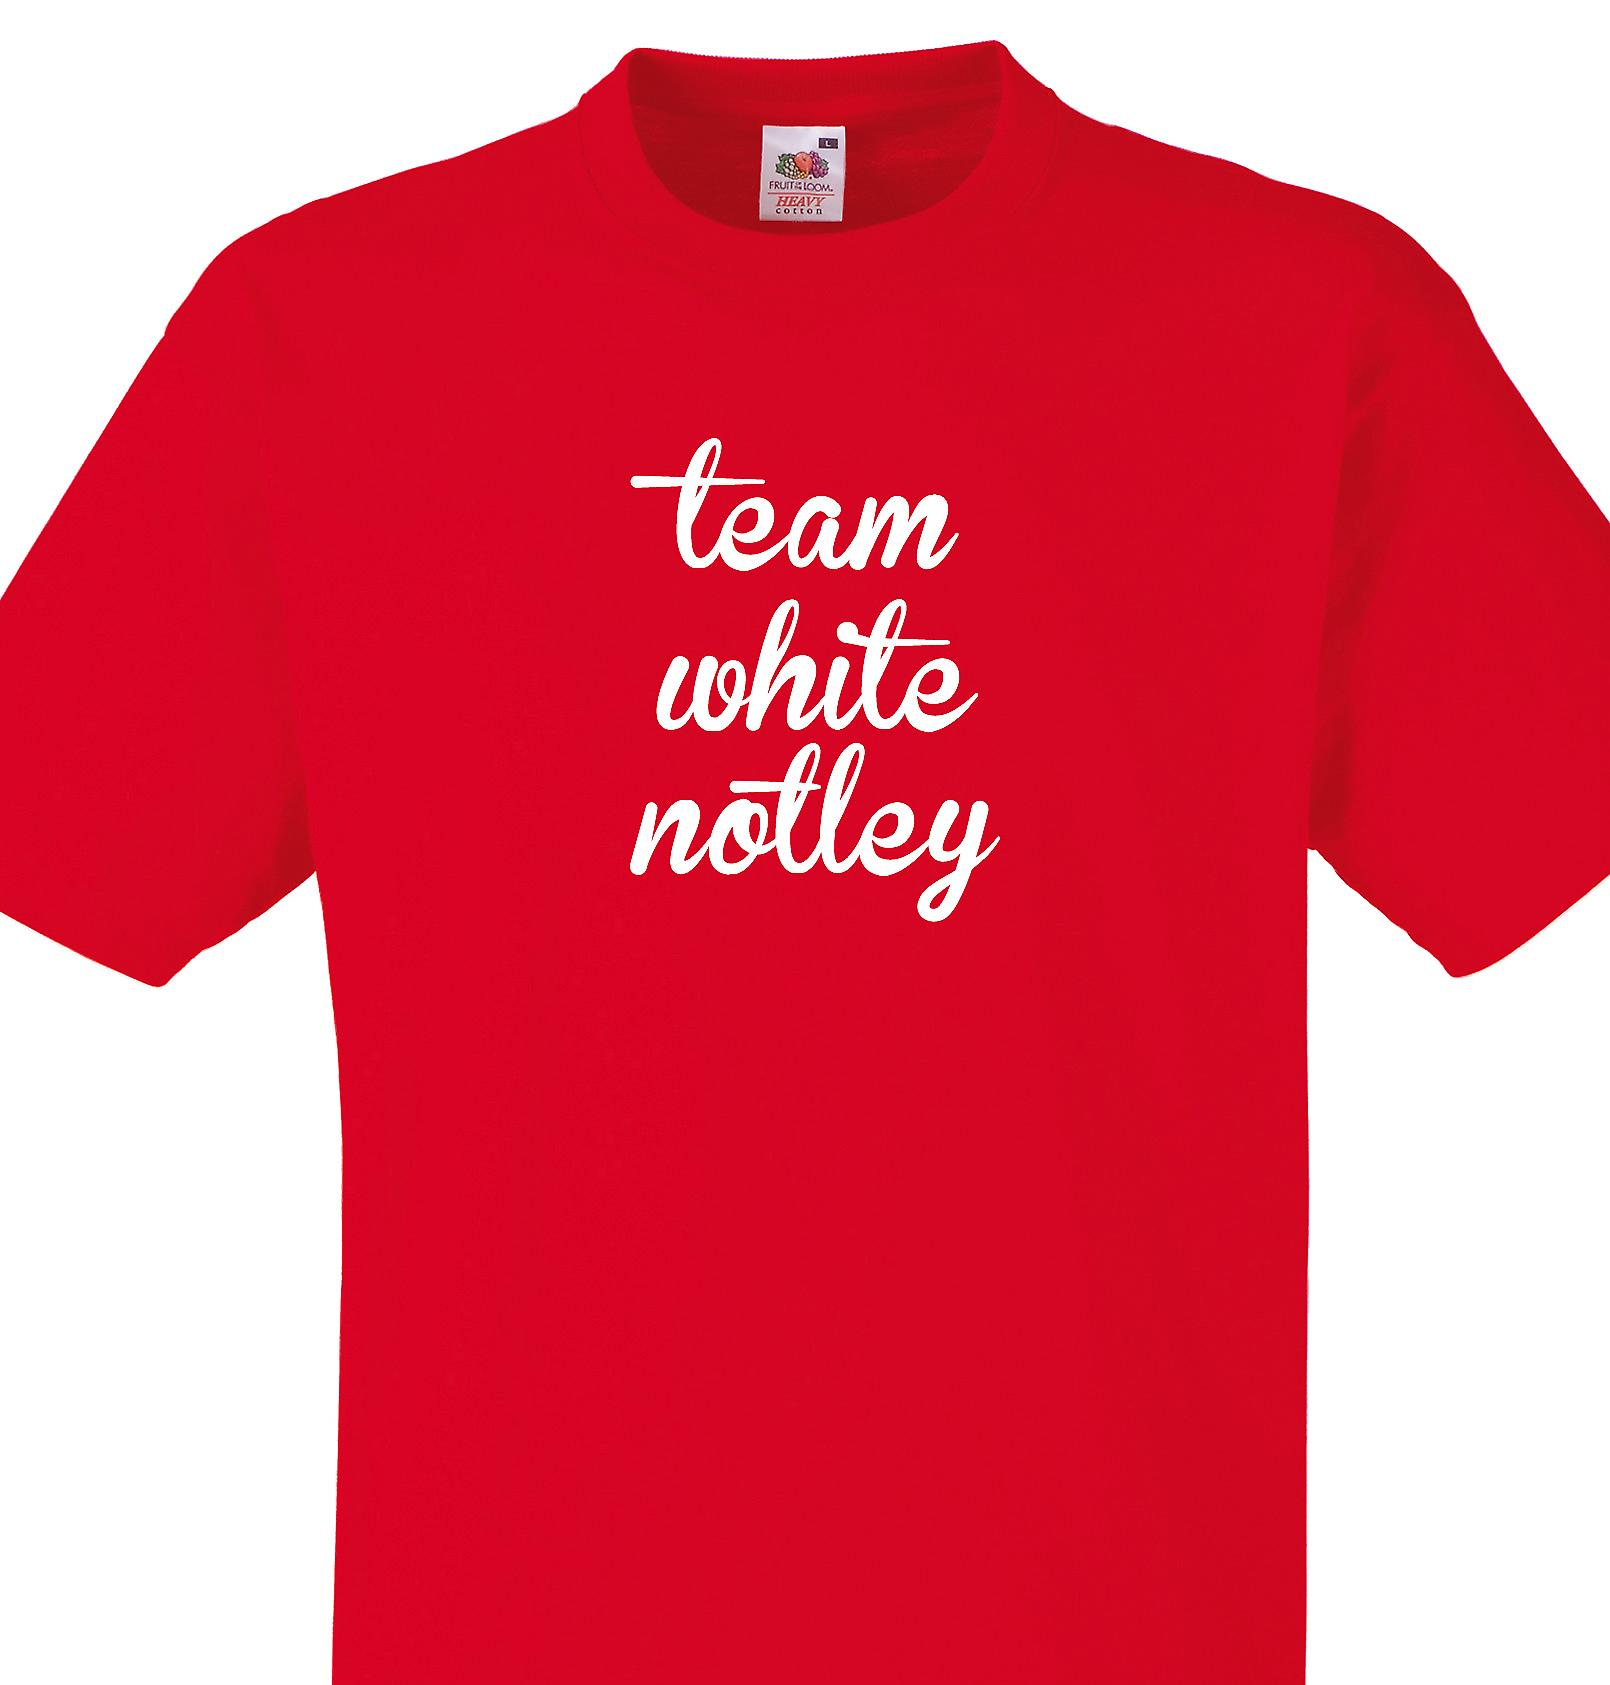 Team White notley Red T shirt